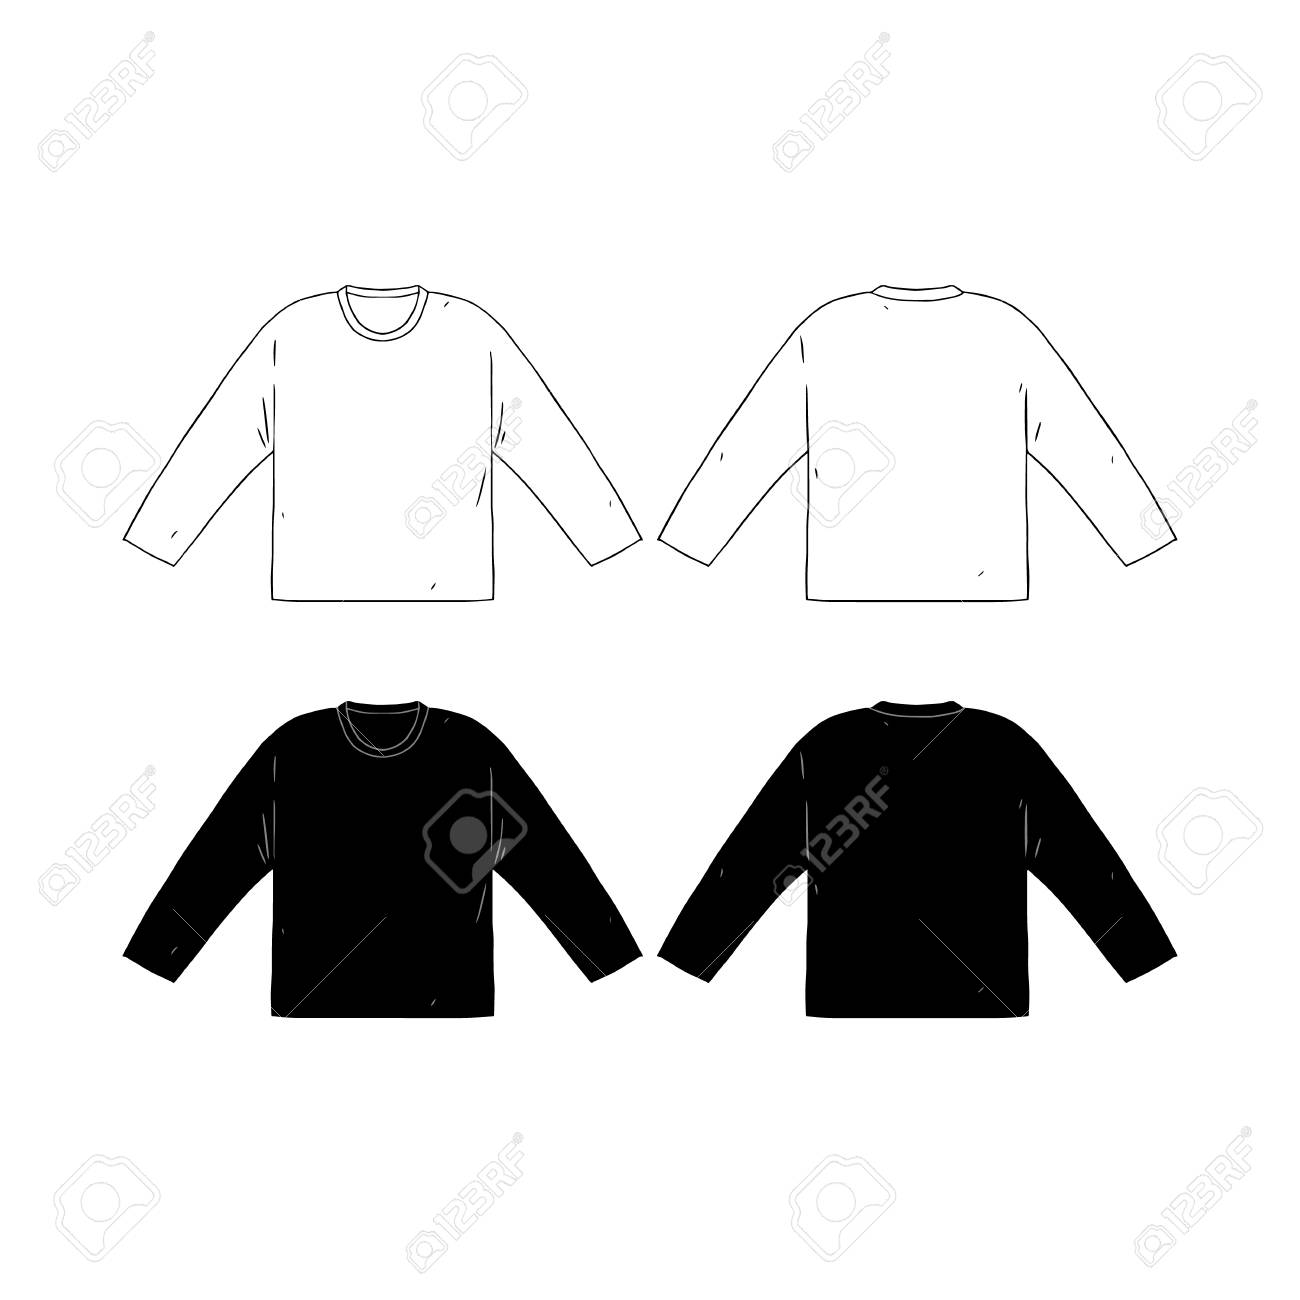 Hand Drawn Vector Illustration Of Blank Long Sleeve T Shirts